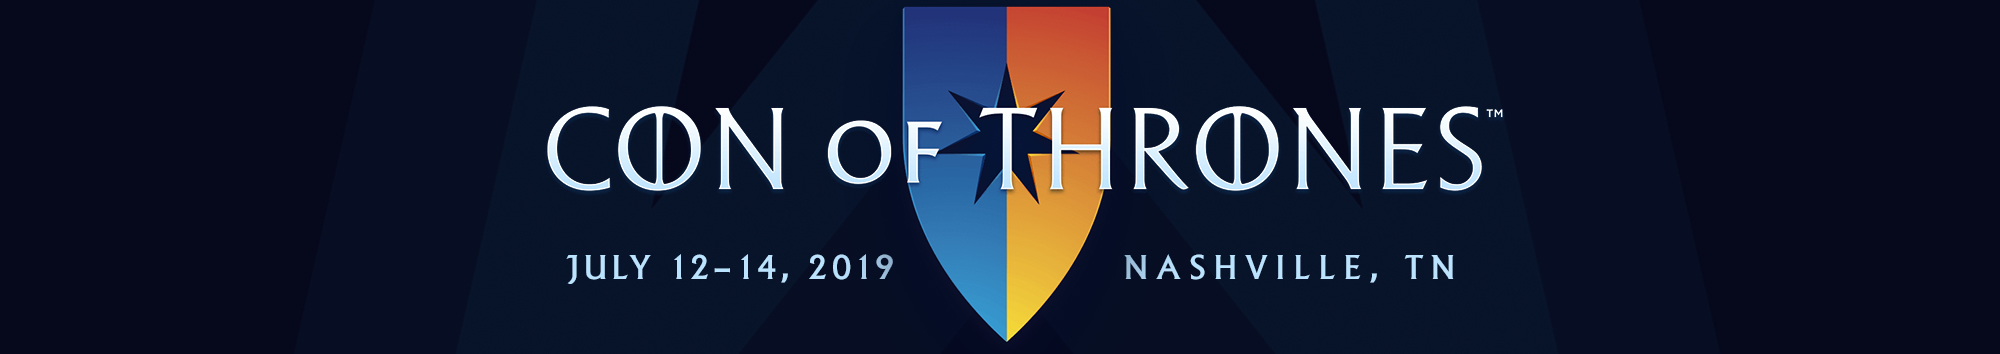 Tickets for Con of Thrones 2019: Add-On Experiences in Nashville from ShowClix